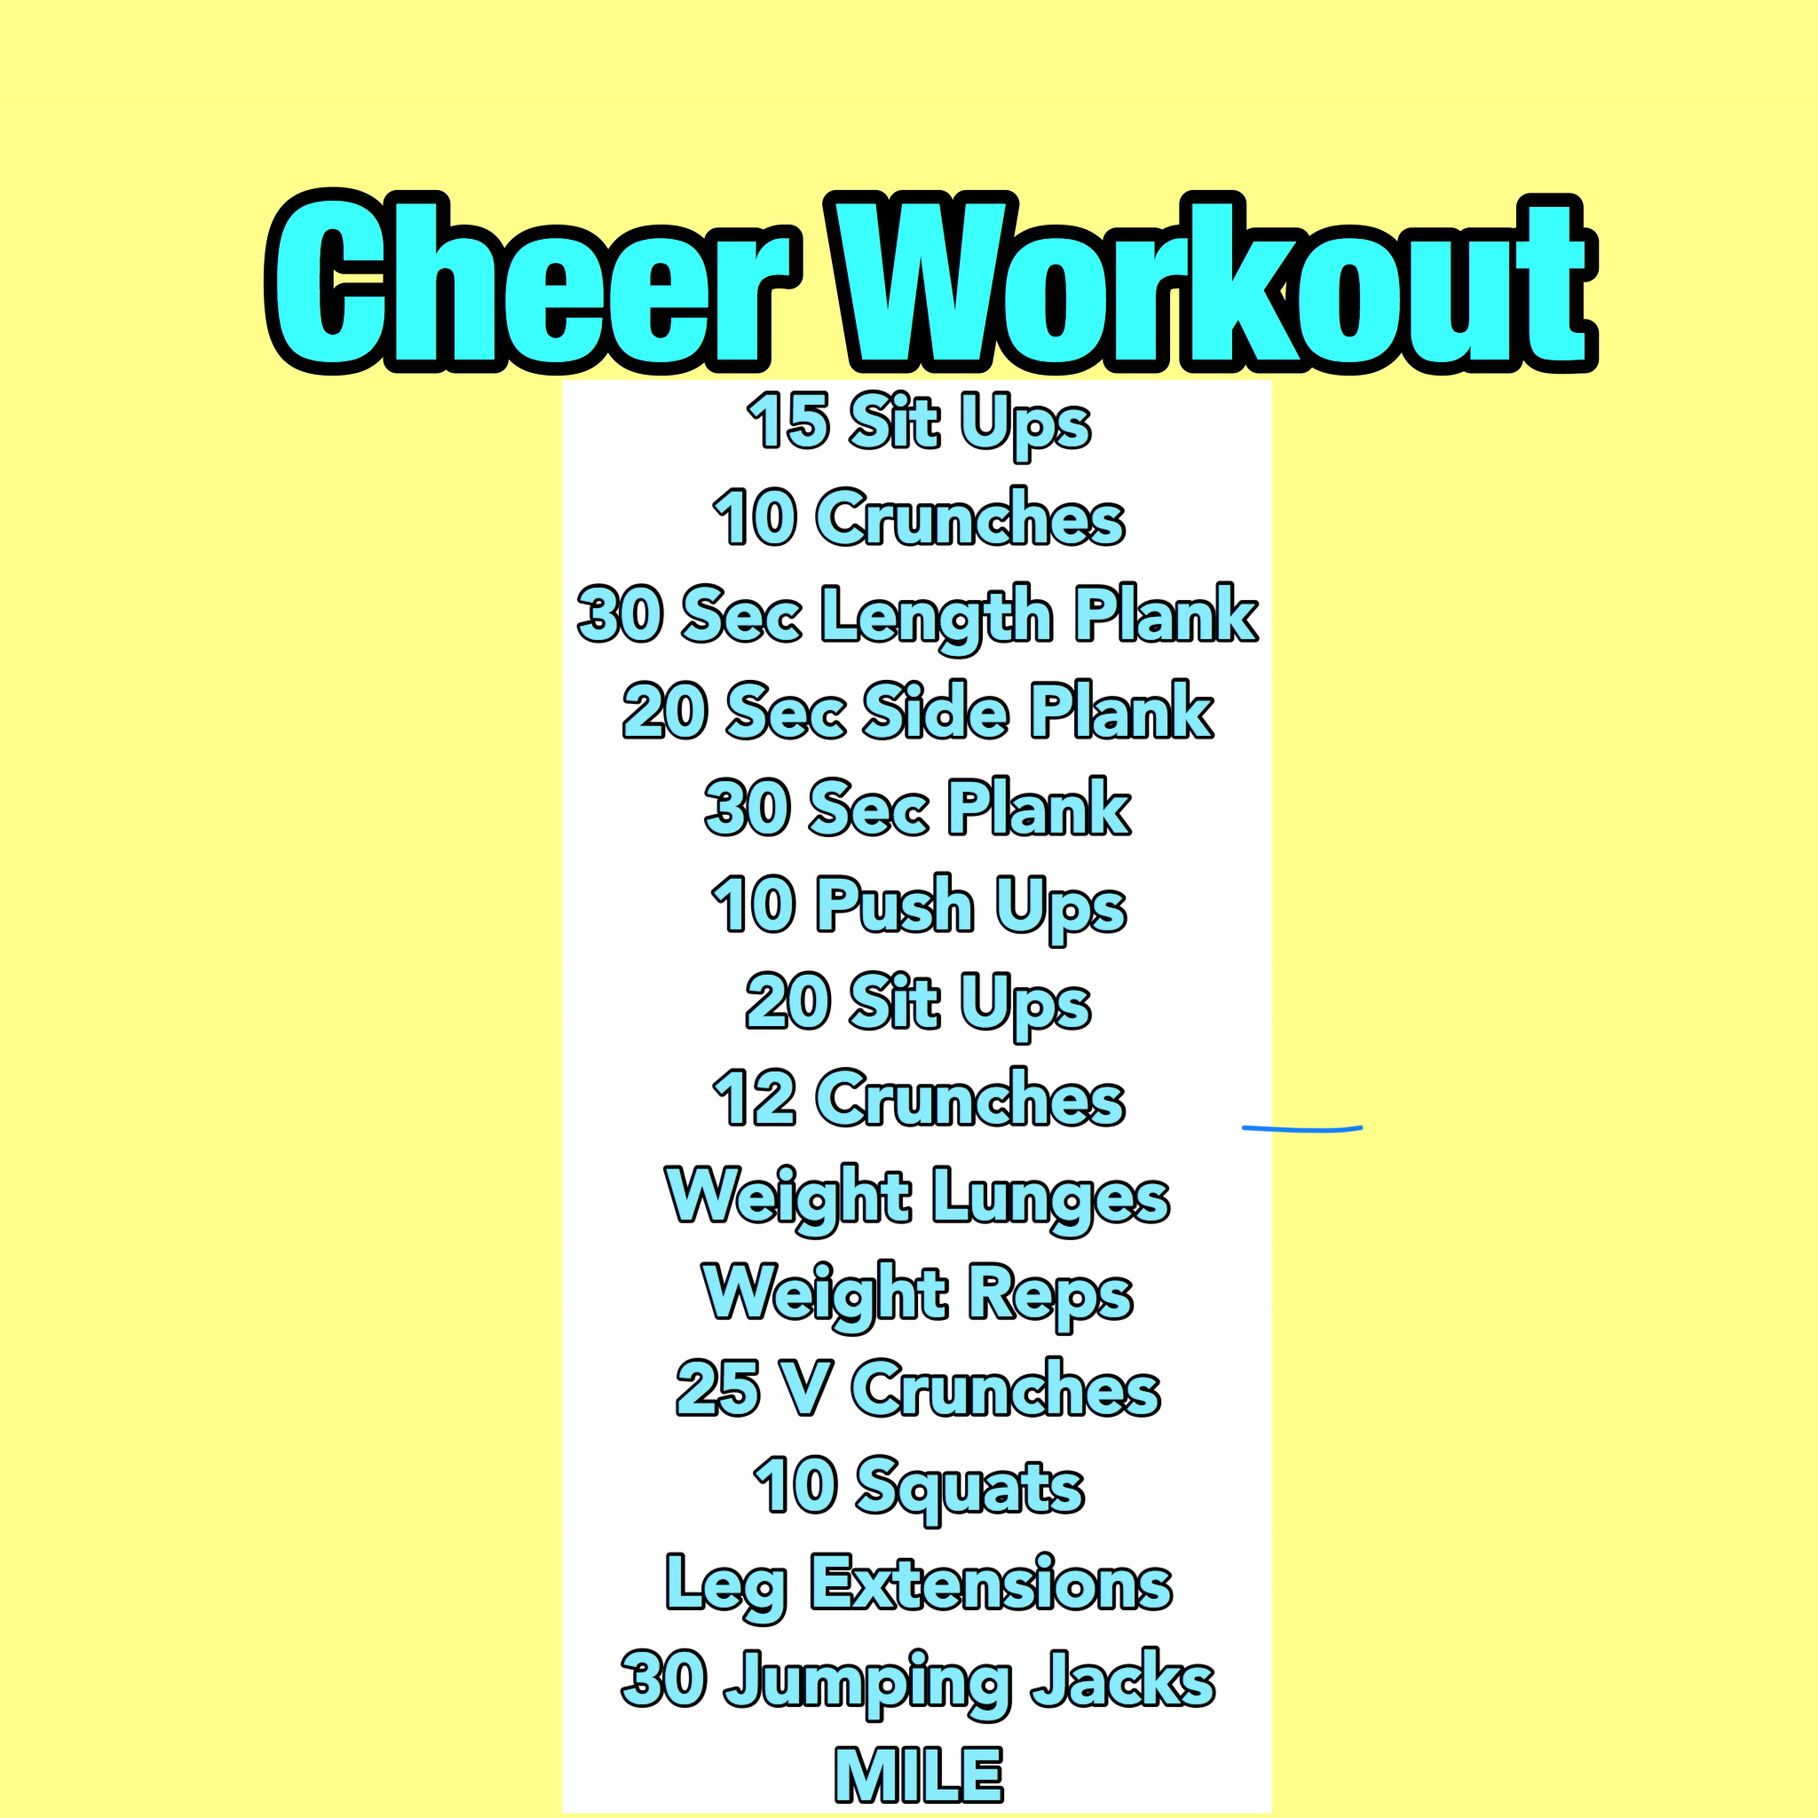 #cheerworkouts